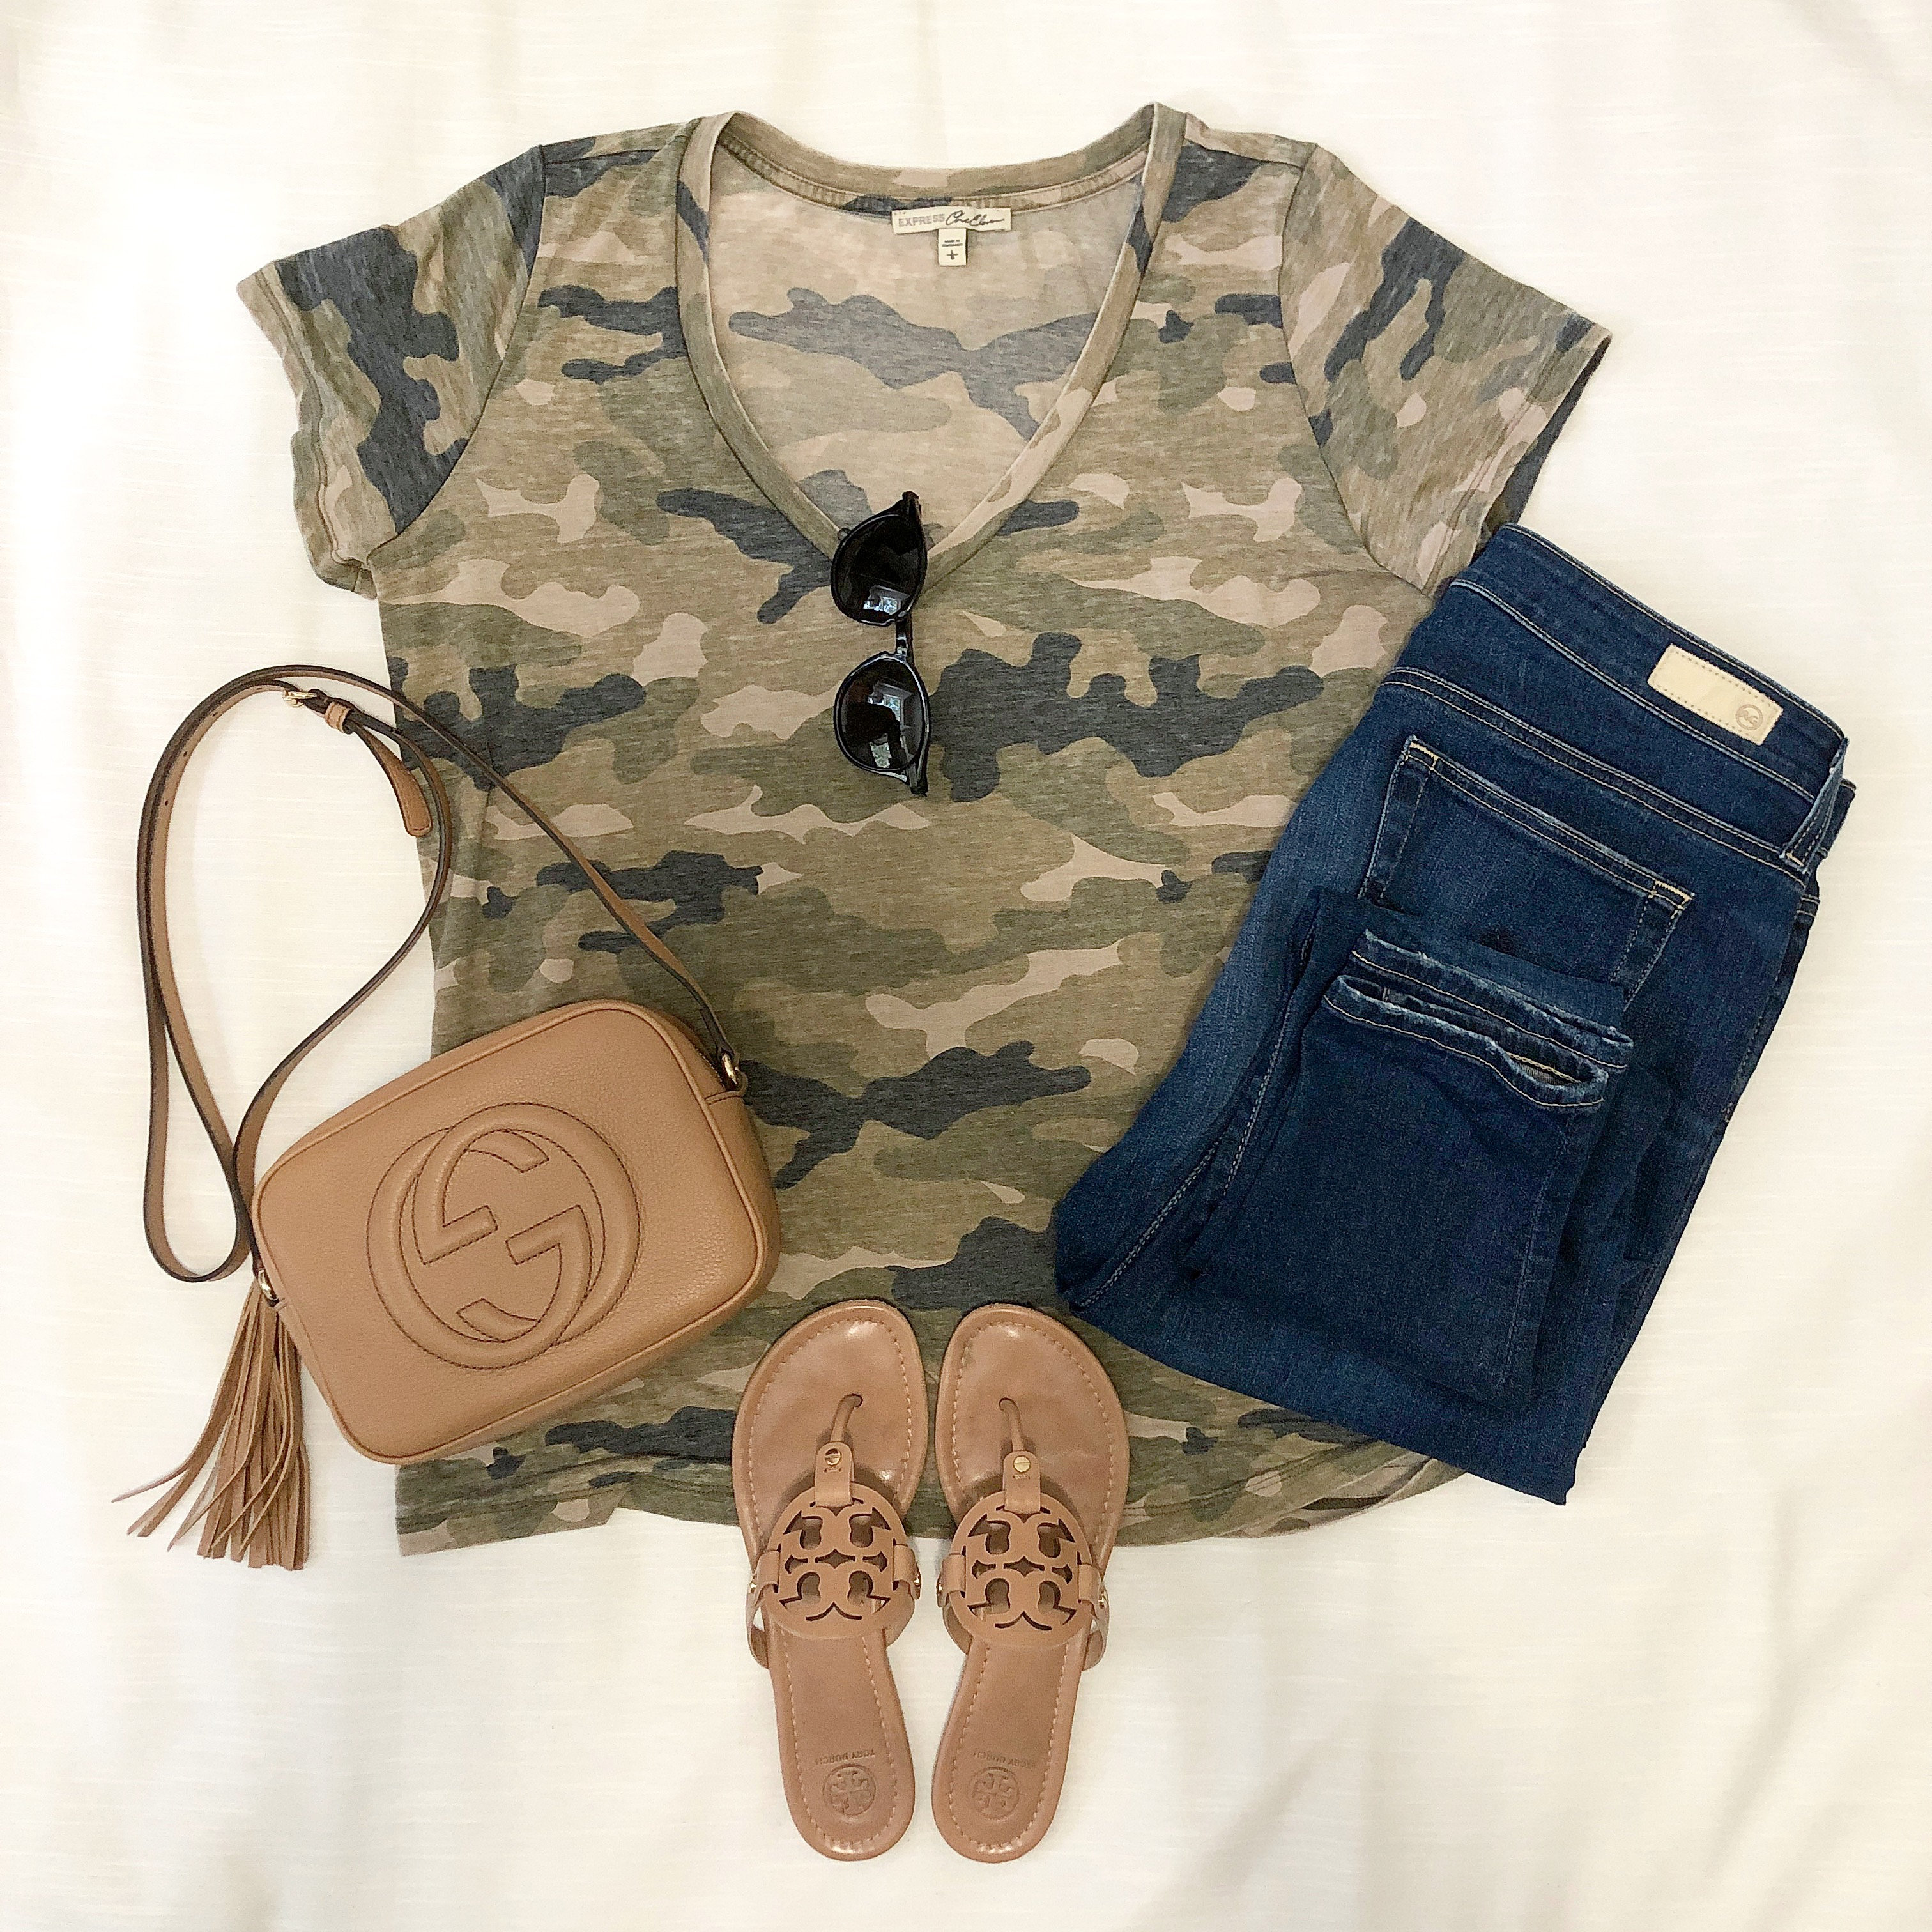 Instagram September 2018 camo tee skinny jeans Tory Burch sandals